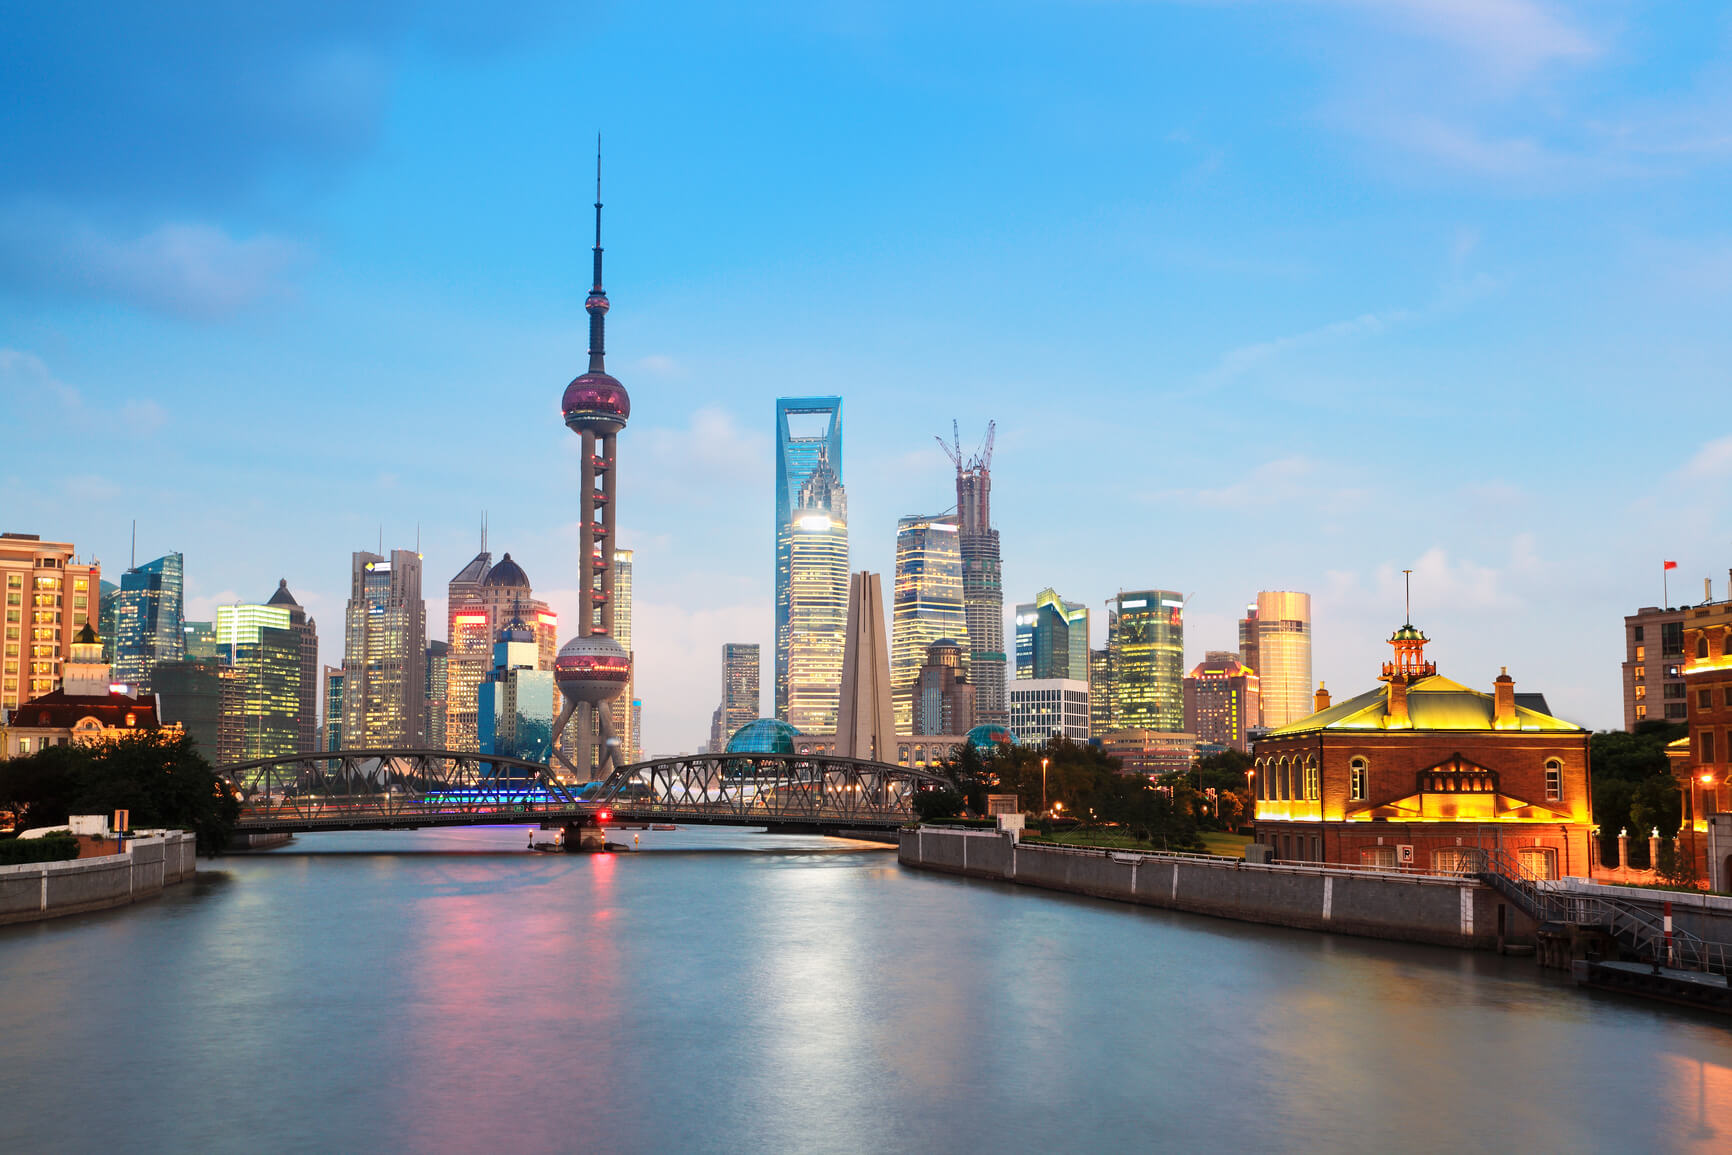 Non-stop from London, UK to Shanghai, China for only £346 roundtrip (Jan-Jun dates)